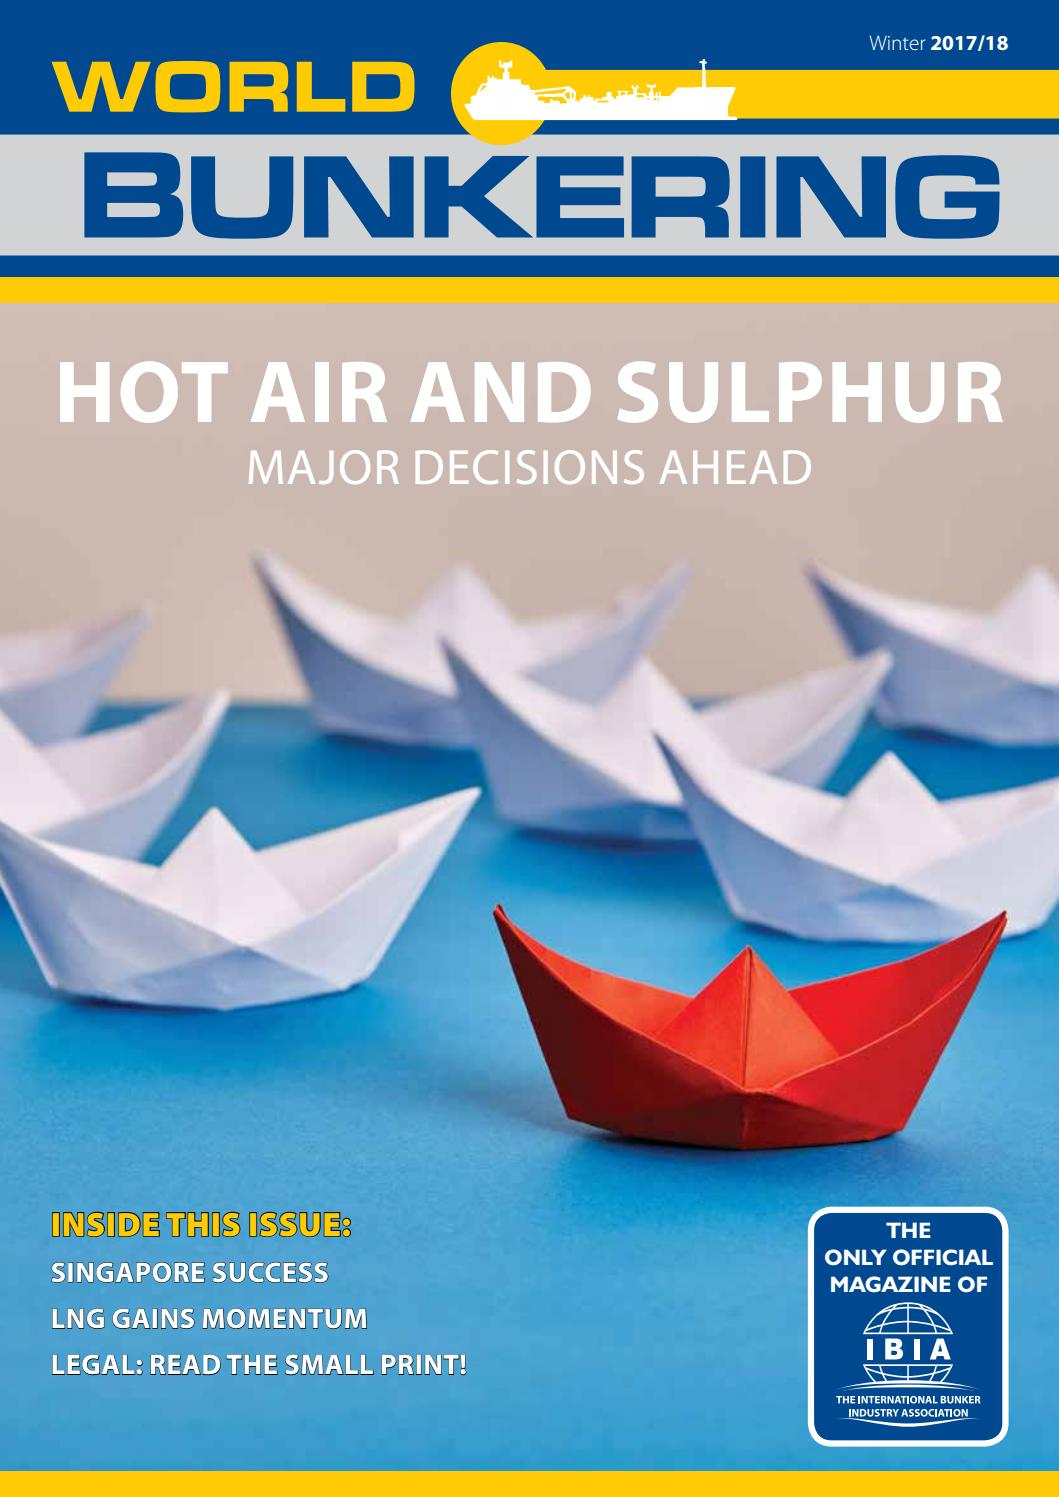 World Bunkering Winter Issue 2017/18 by Constructive Media